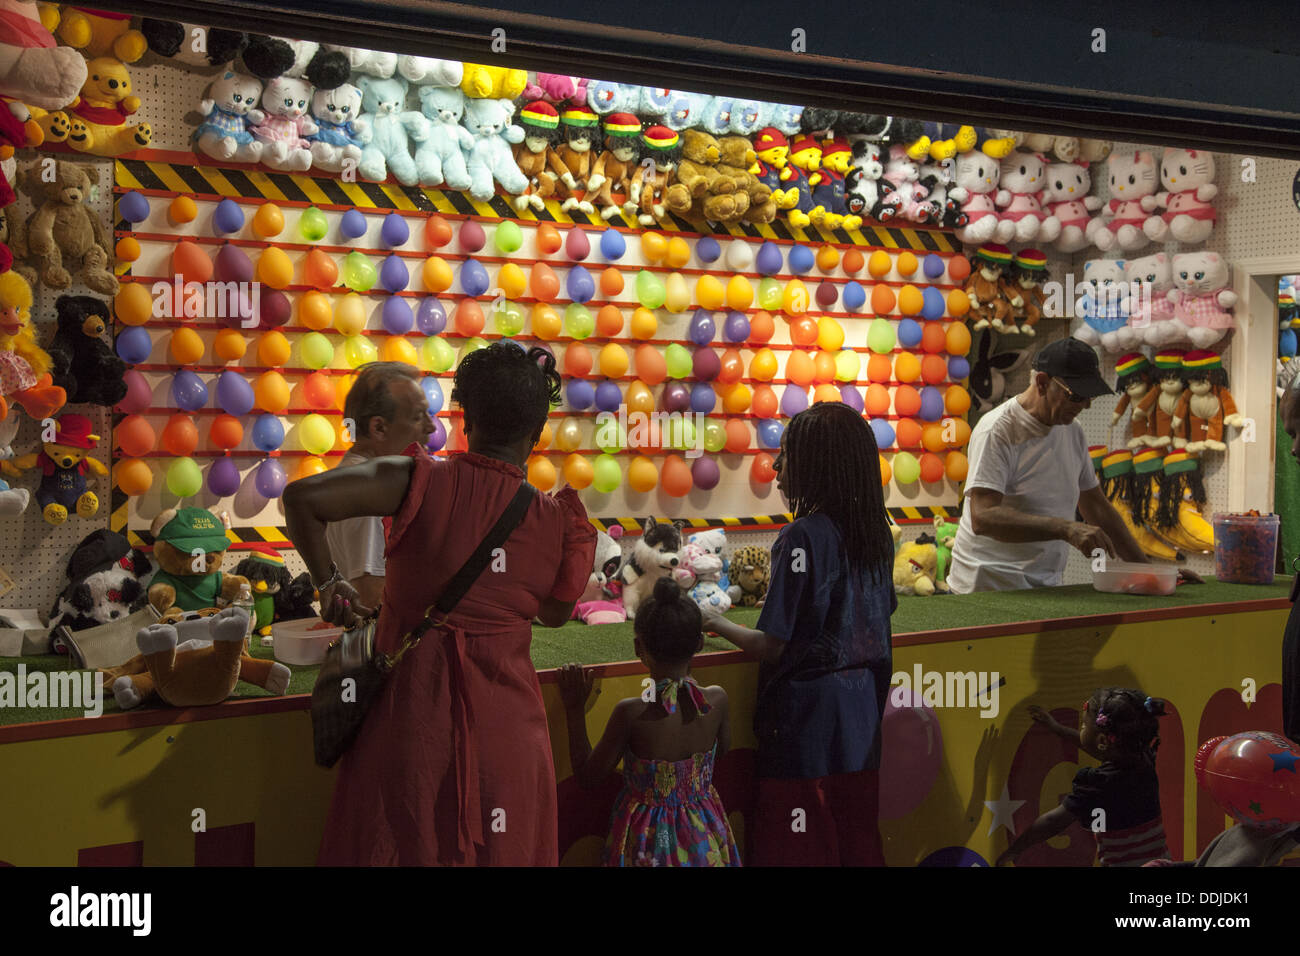 Pop a balloon and win a prize. Arcade, Coney Island, Brooklyn, NY. - Stock Image